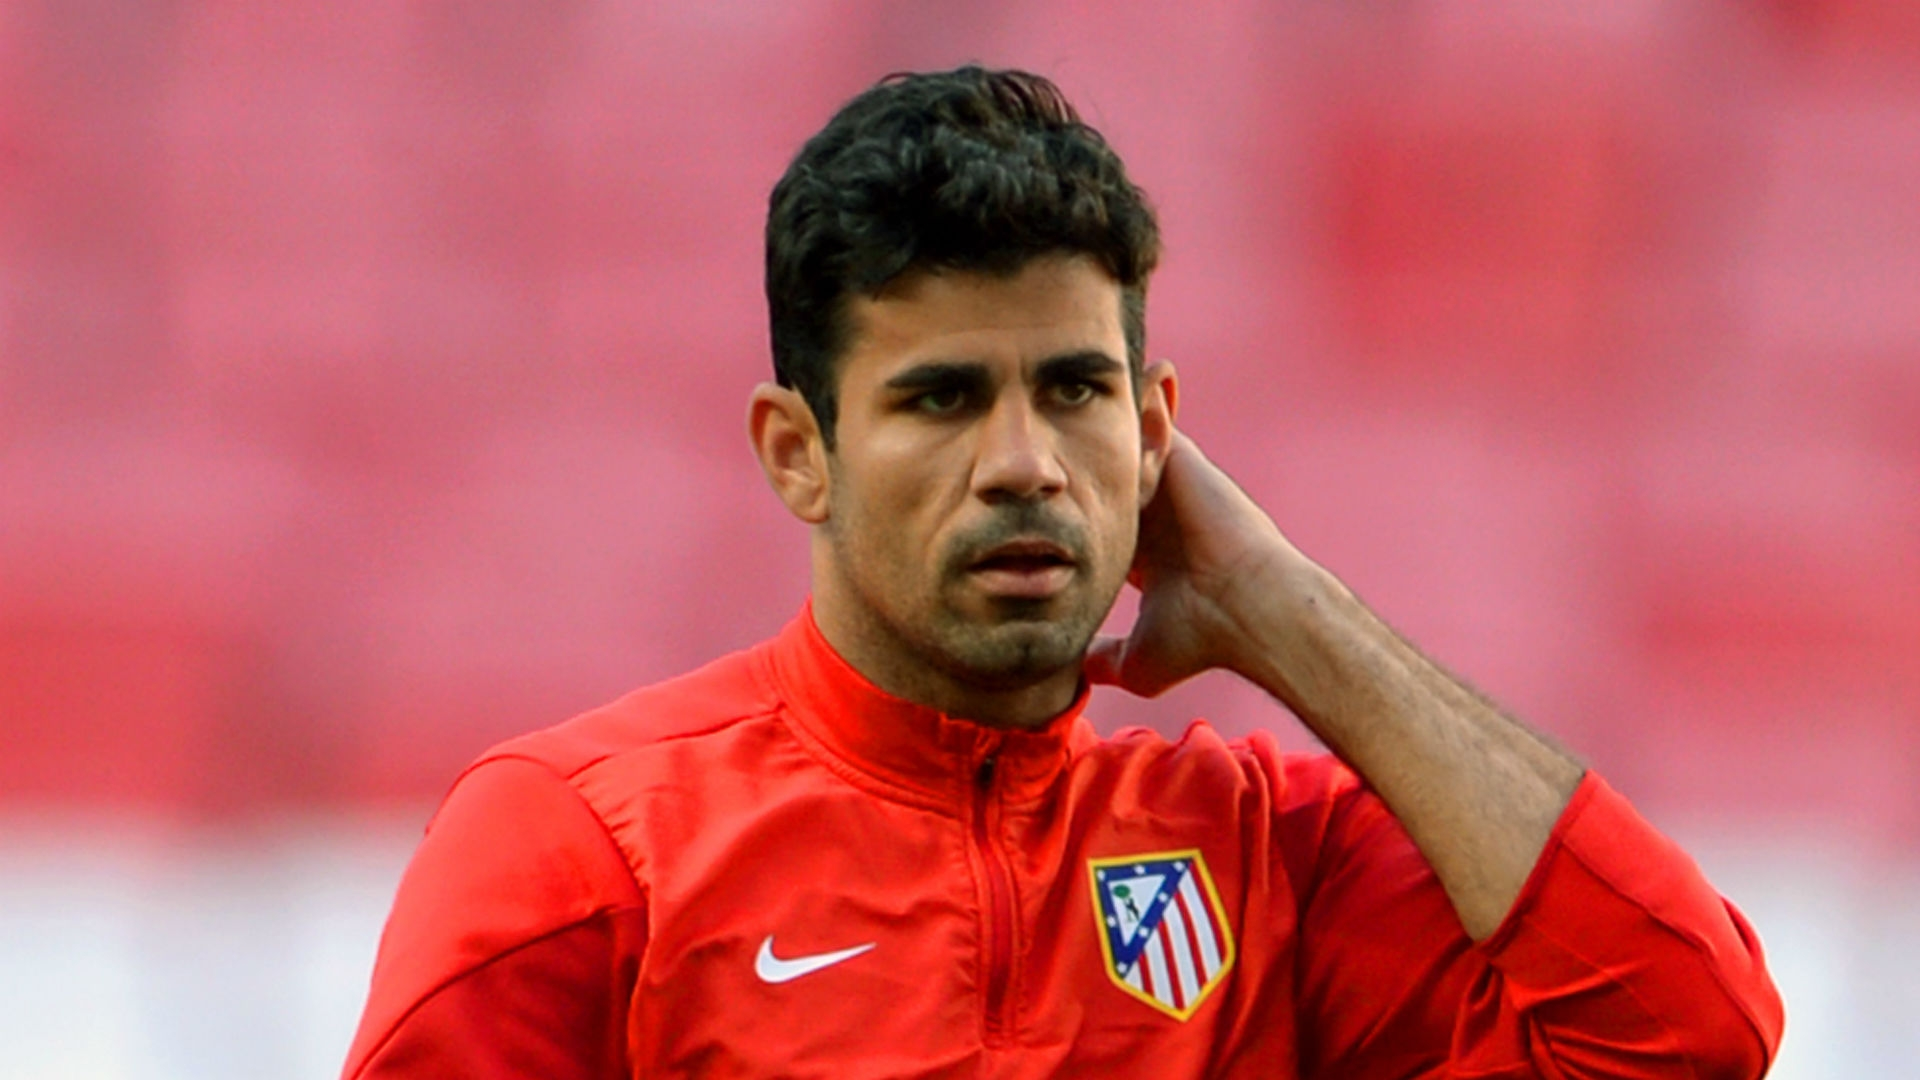 Diego Costa is said to negotiating with Atletico Madrid.